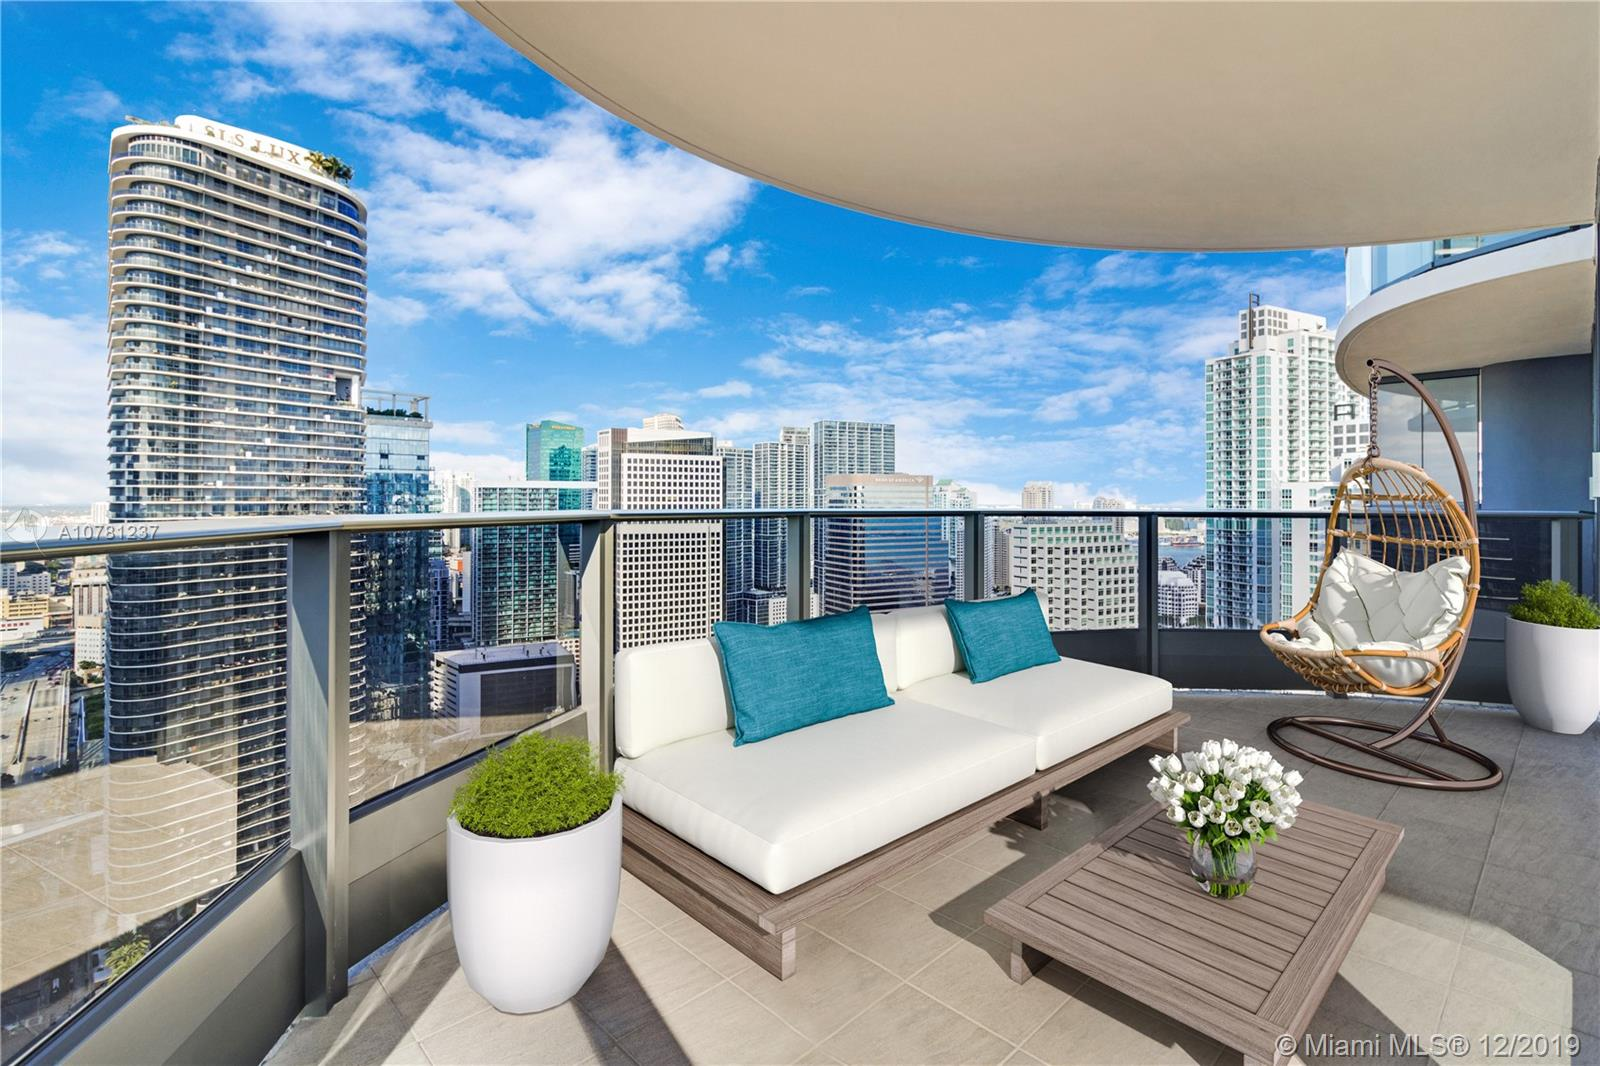 NYC skyline meets Miami's with most anticipated Flat Iron Brickell. The coveted corner 12 line residence, the only reconfigured floor plan unit, sold out, offers unobstructed sweeping vistas from the 40th floor featuring 1,446 SF, 2 wraparound terraces, a grand master suite, Snaidero kitchen, Miele appliances, upgraded Italian acrylic doors, beautifully crafted marble bathrooms, upgraded Italian porcelain floors for a sleek sexy Miami style! The masterpiece by Ugo Colombo and designed by Luis Revuelta offers luxury like no other with 64th rooftop pool, spa, and gym above the city, an additional 18th floor pool, movie theater, and billiards lounge are some of the key amenities to enjoy as an exclusive resident. Be one of the few to call Flat Iron home! Sellers financing available.